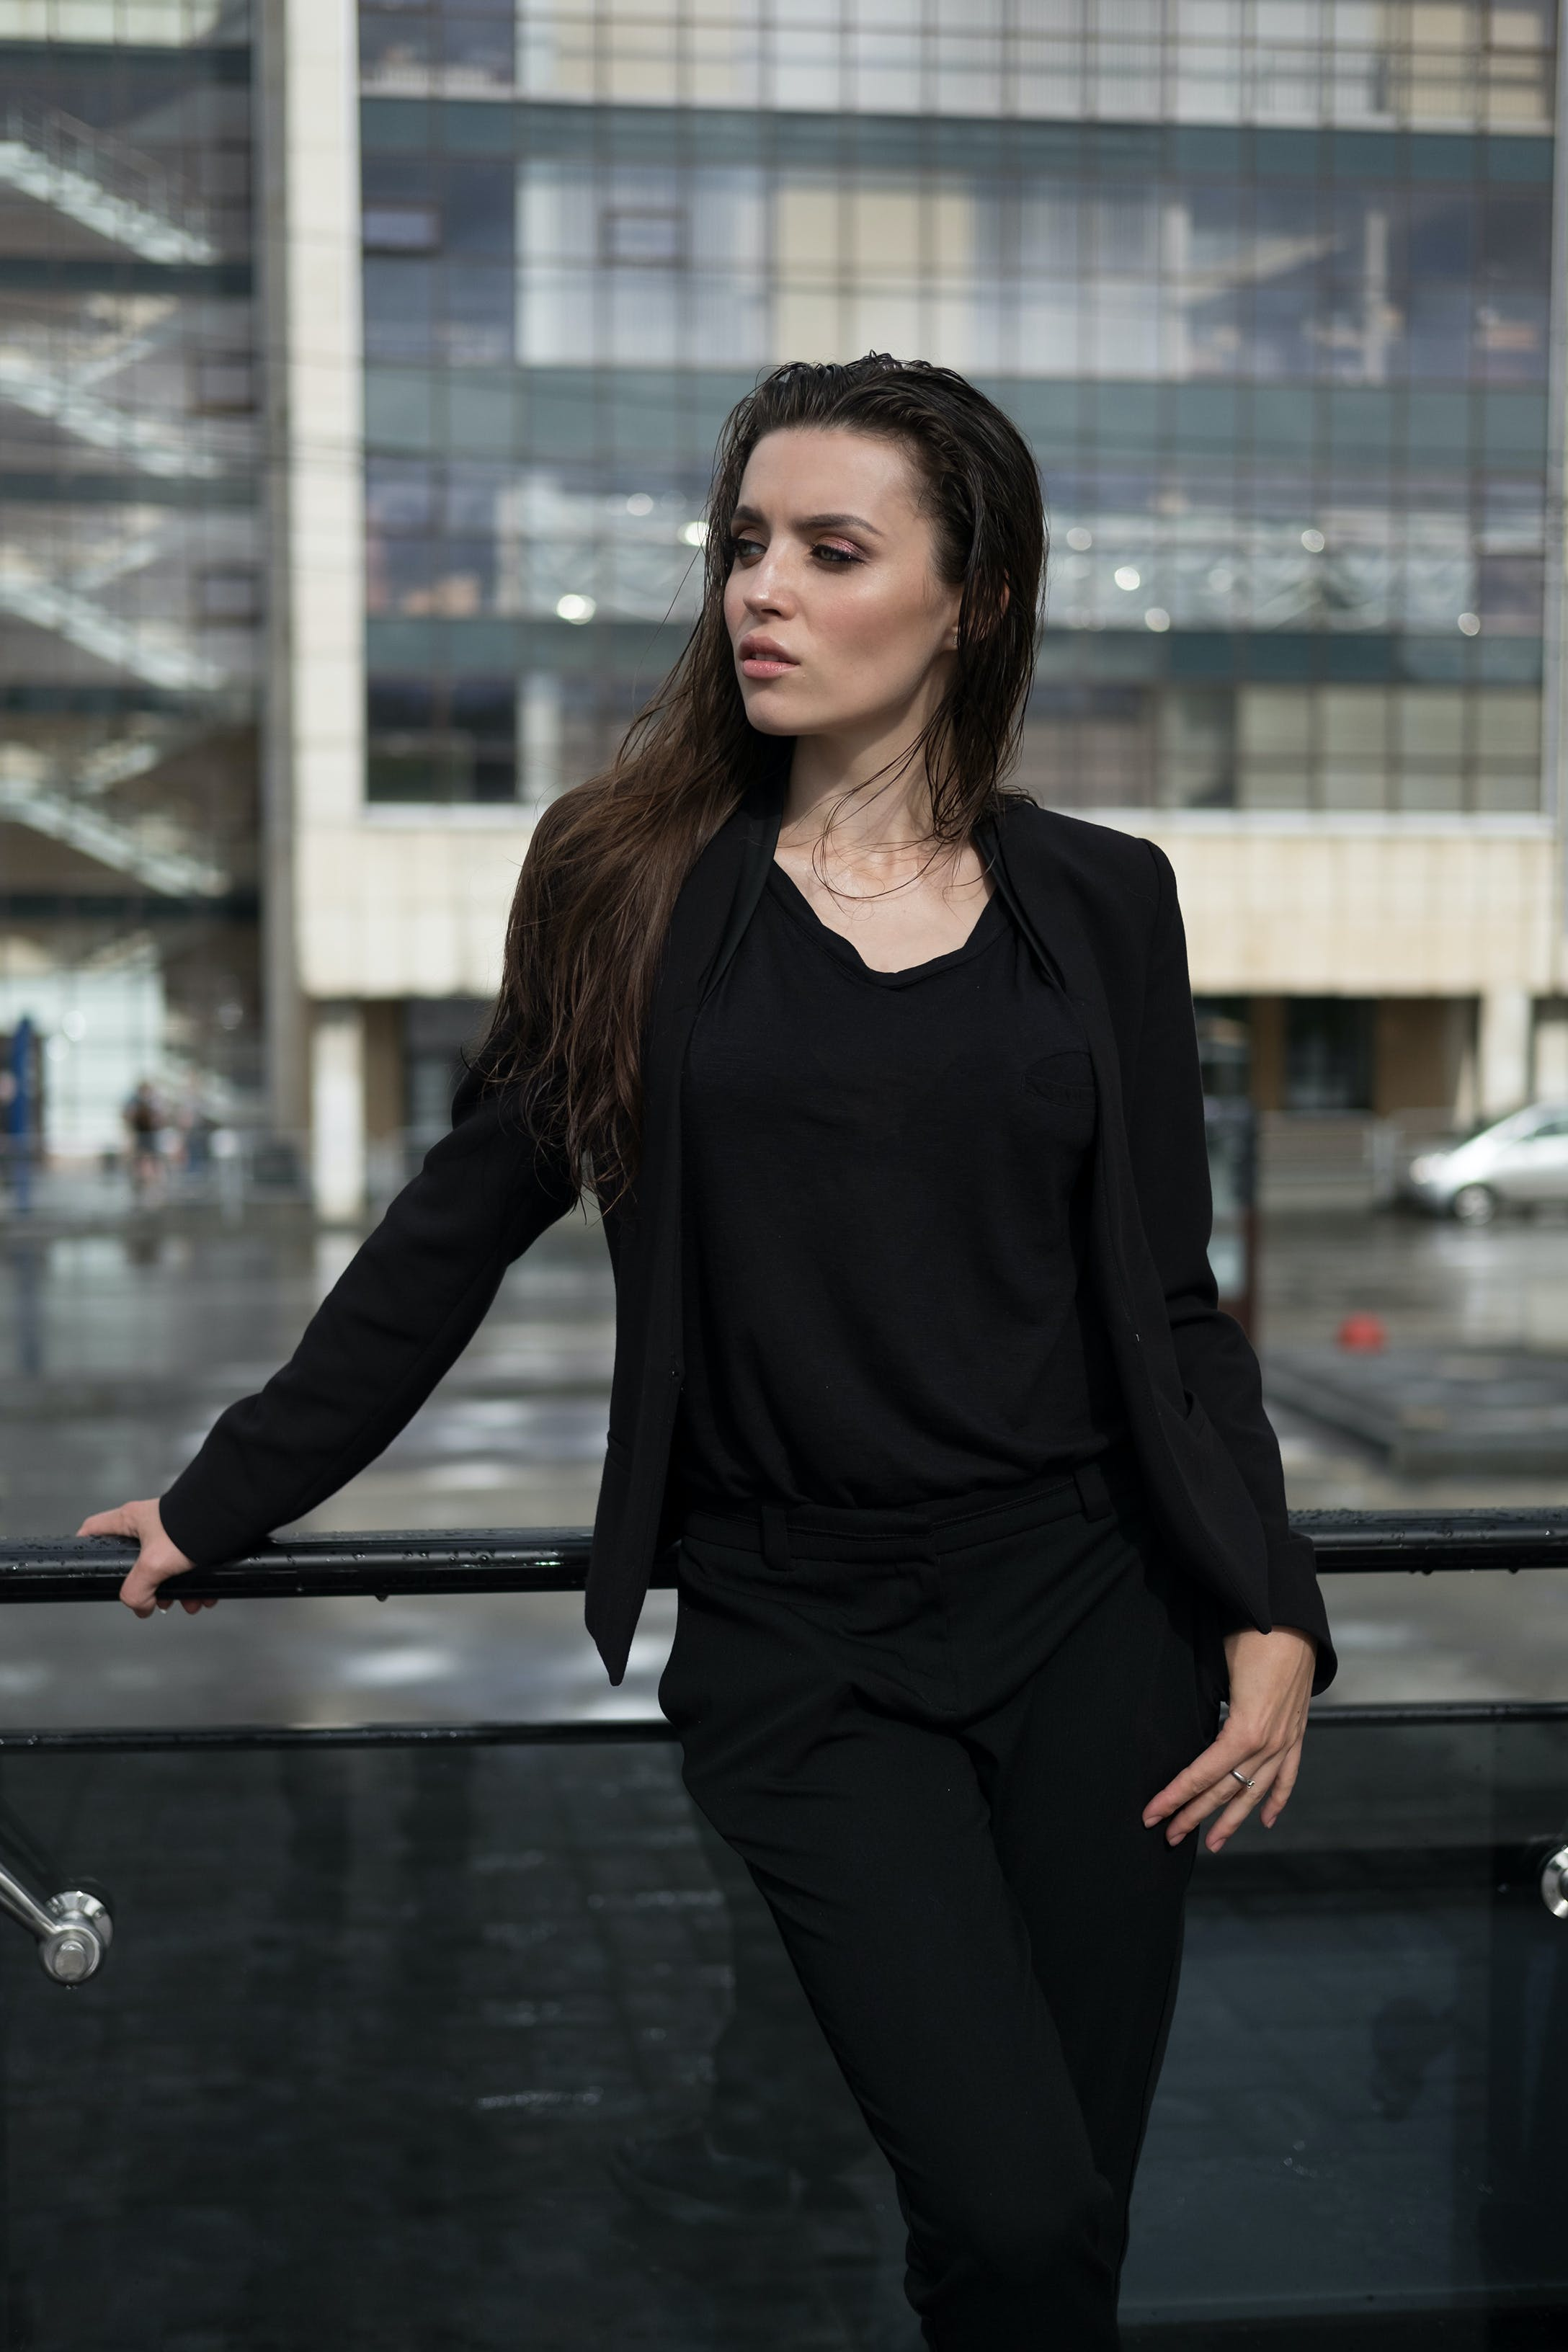 Woman Leaning on Black Wall